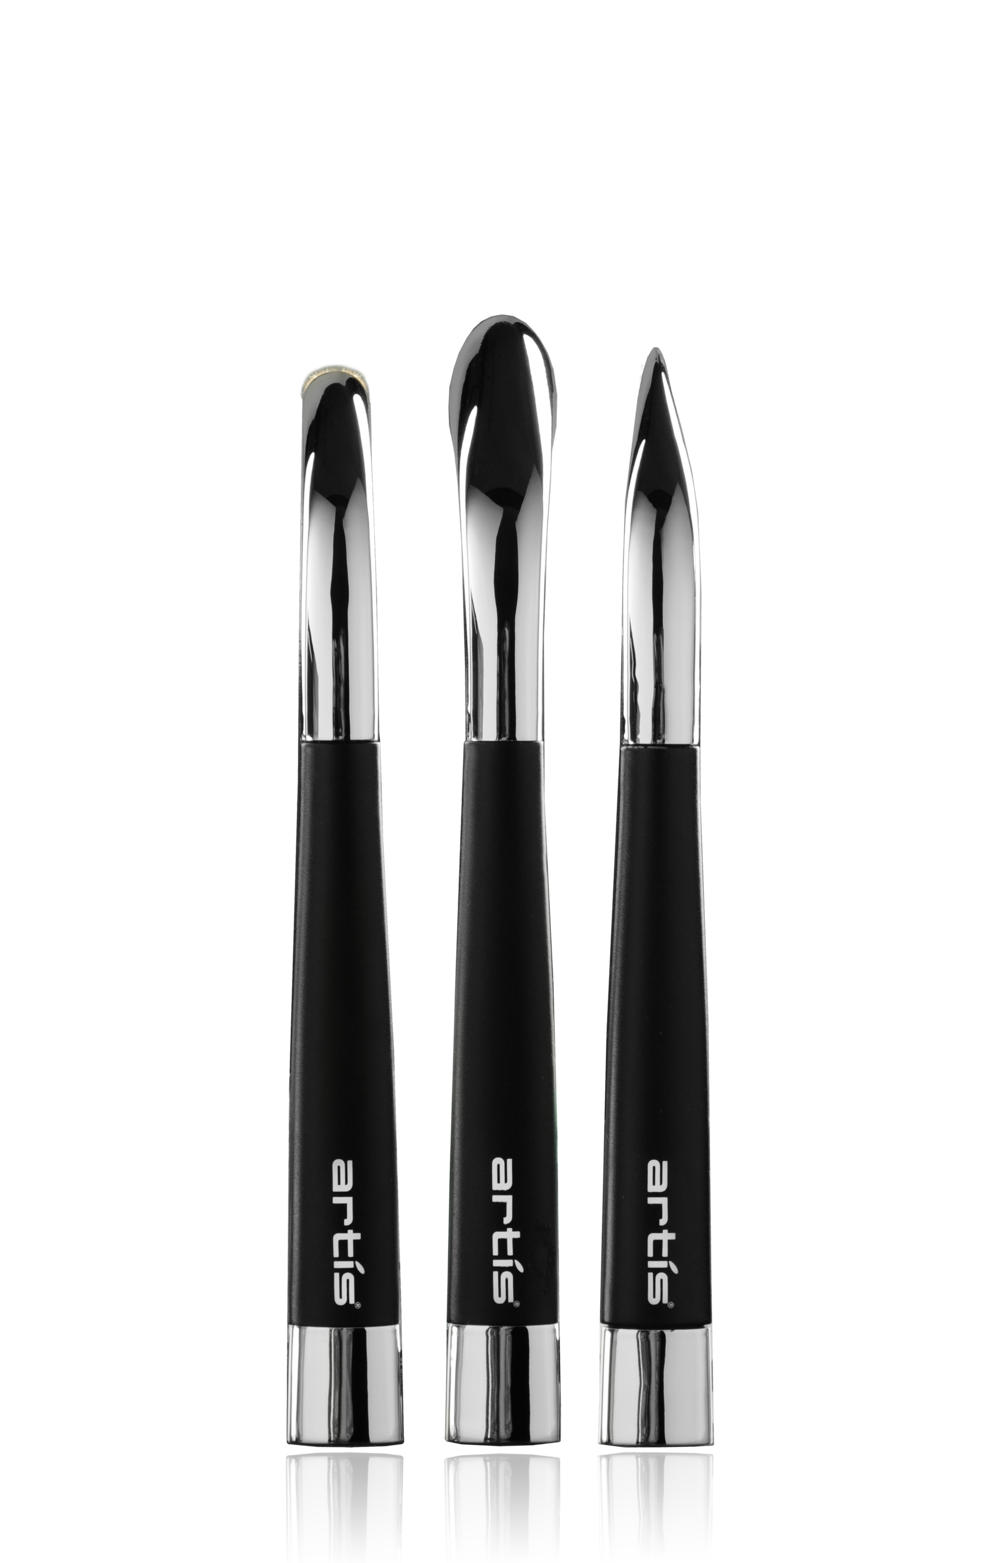 Fluenta, 3 Brush Set